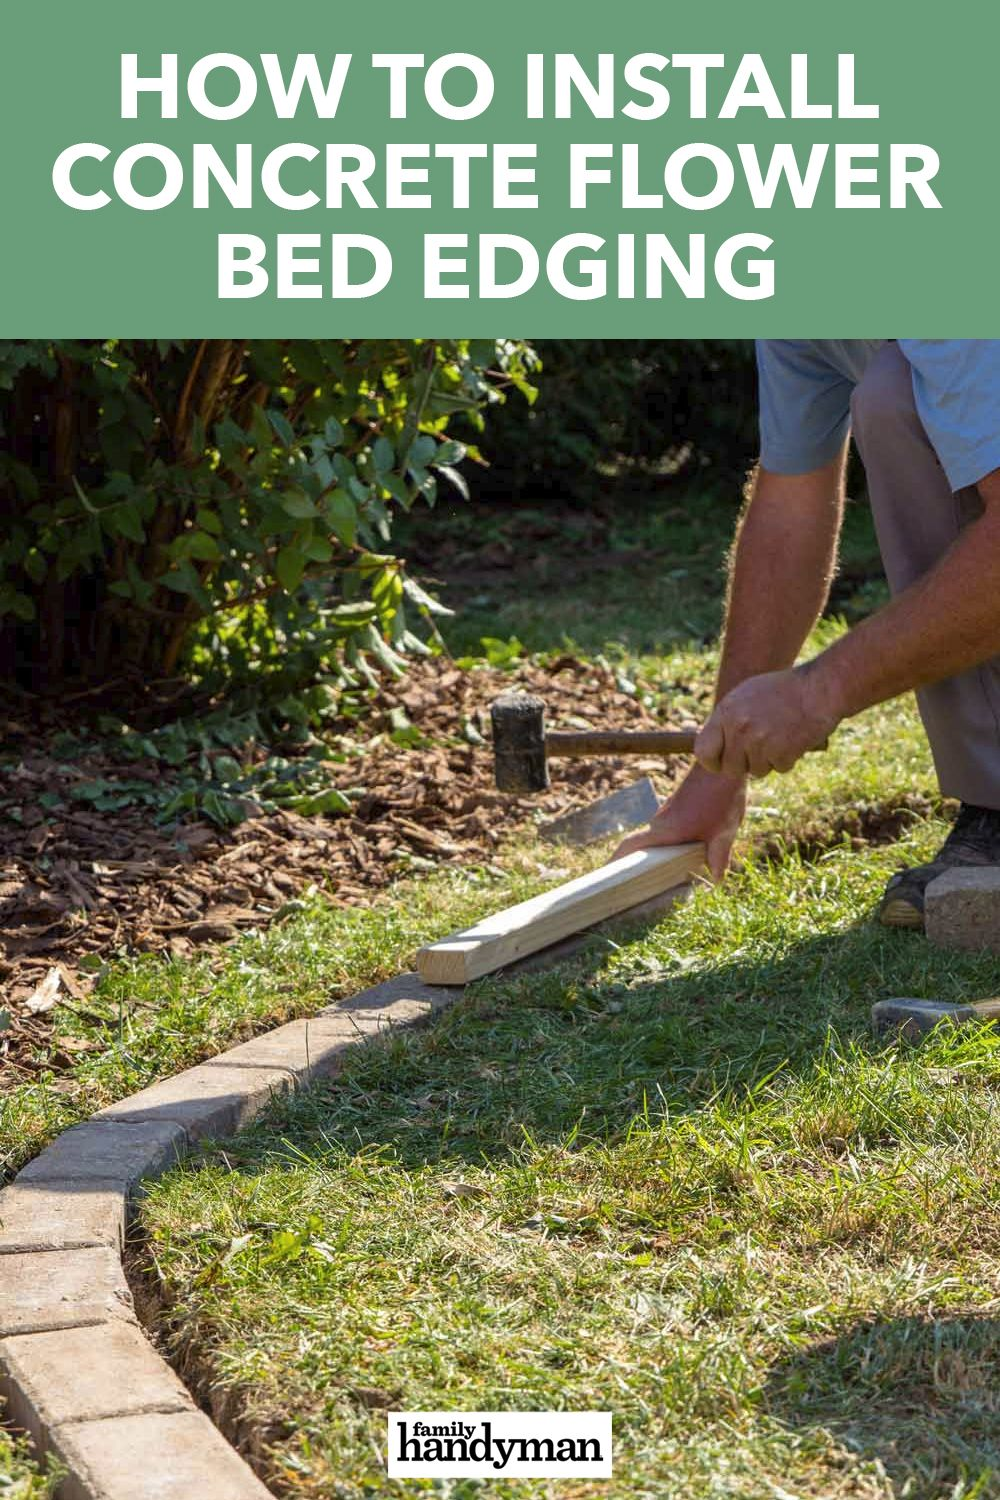 How To Install Concrete Flower Bed Edging Flower Bed Edging Flower Beds Landscaping Tips